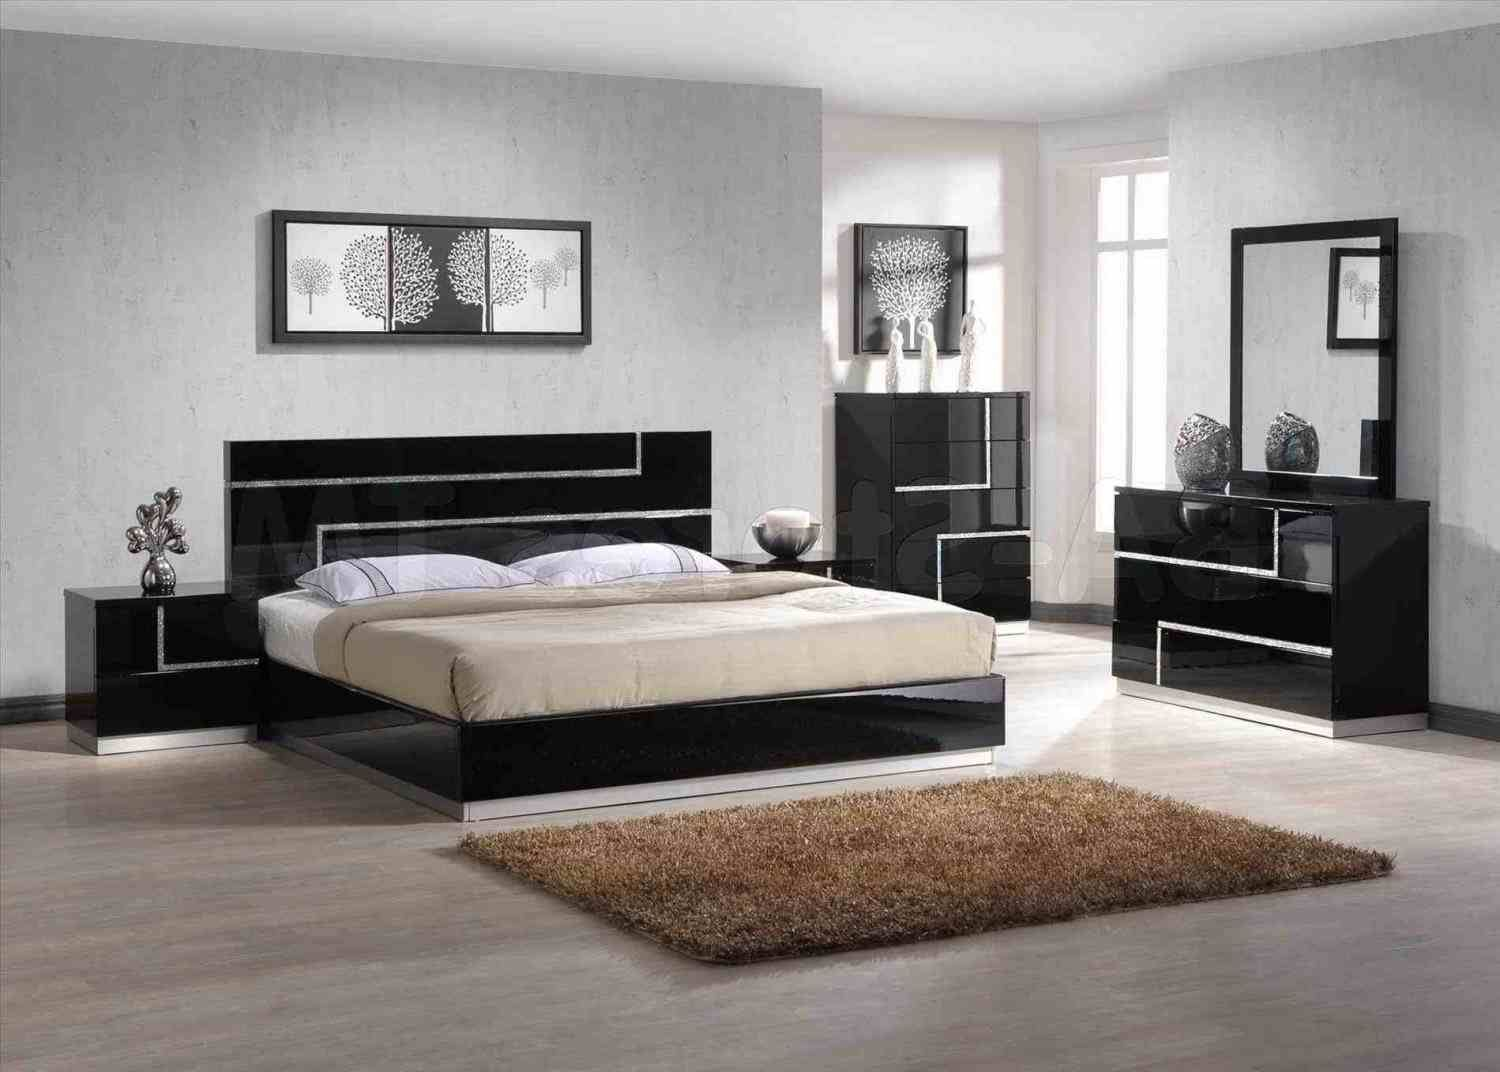 Beautiful Bedroom Furniture Designs For 10x12 Room Minimalist Home Design Ideas